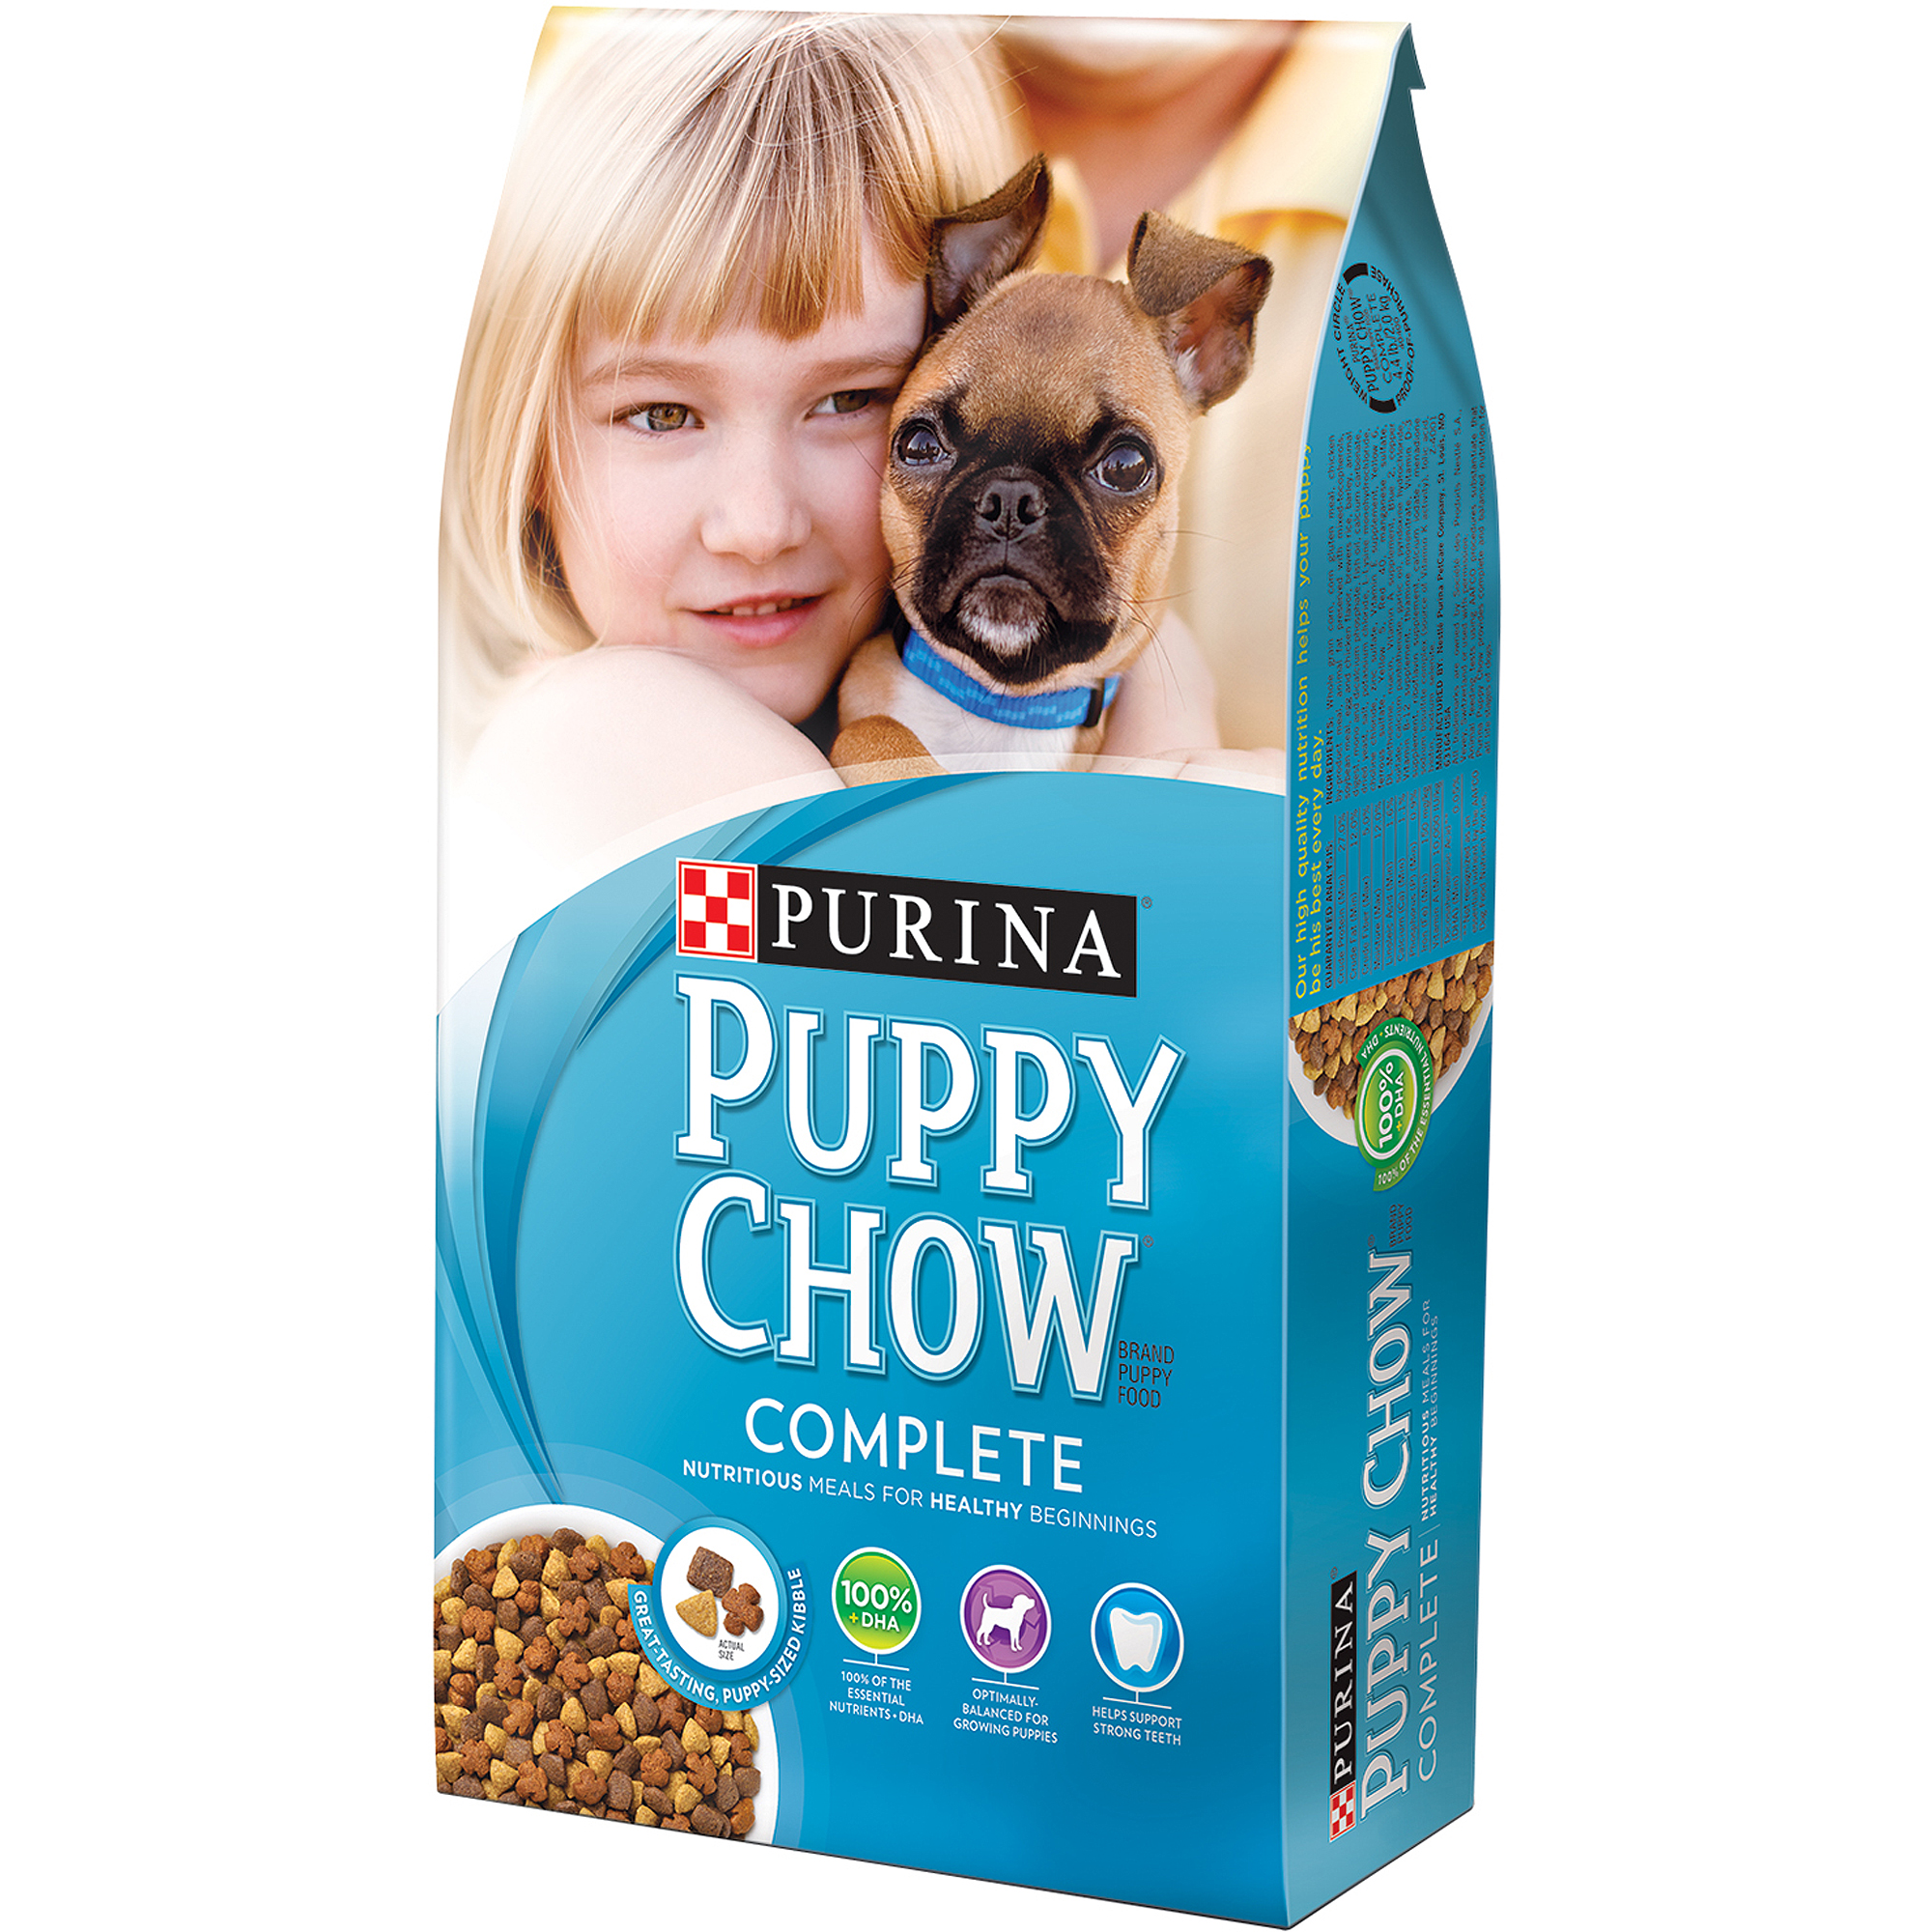 Chow Puppy Coupons Print